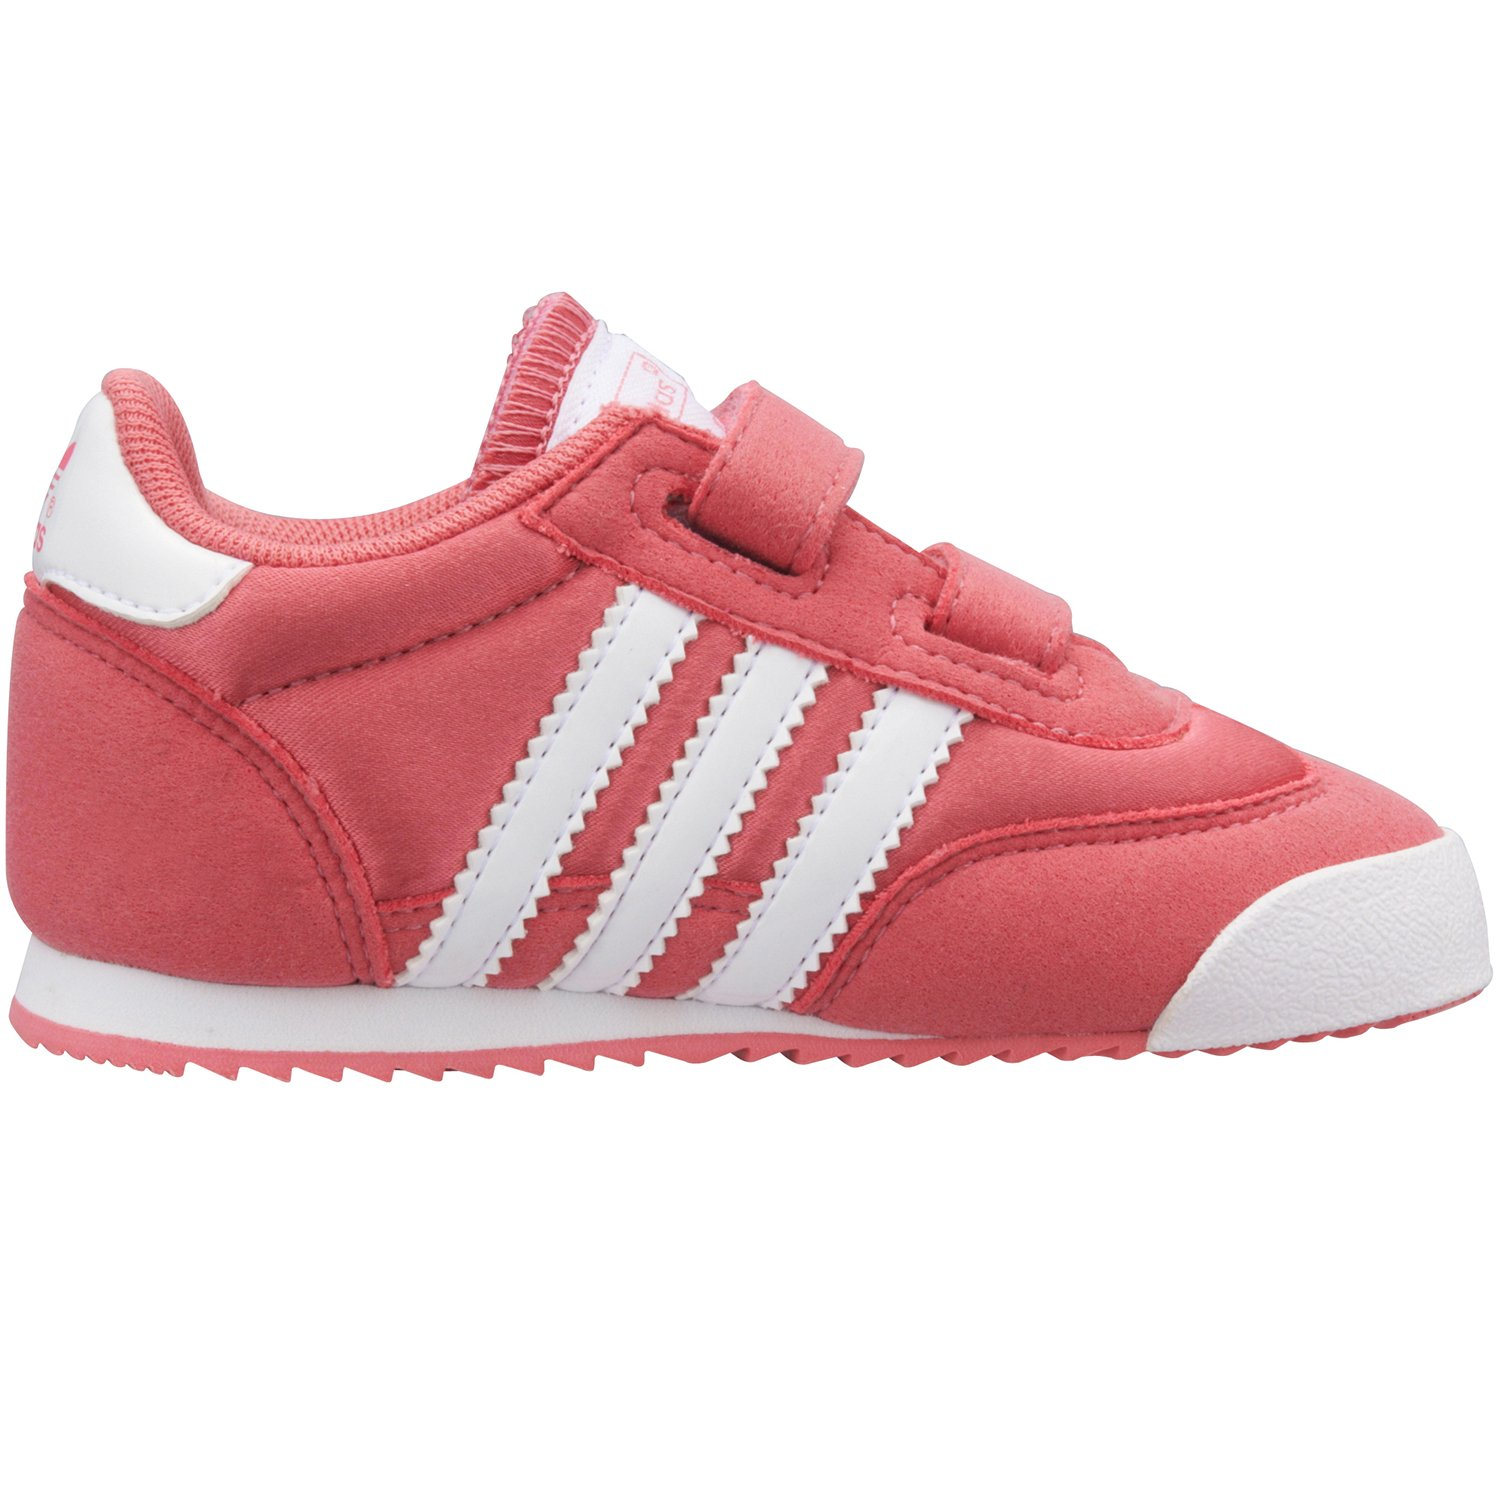 adidas dragon rose